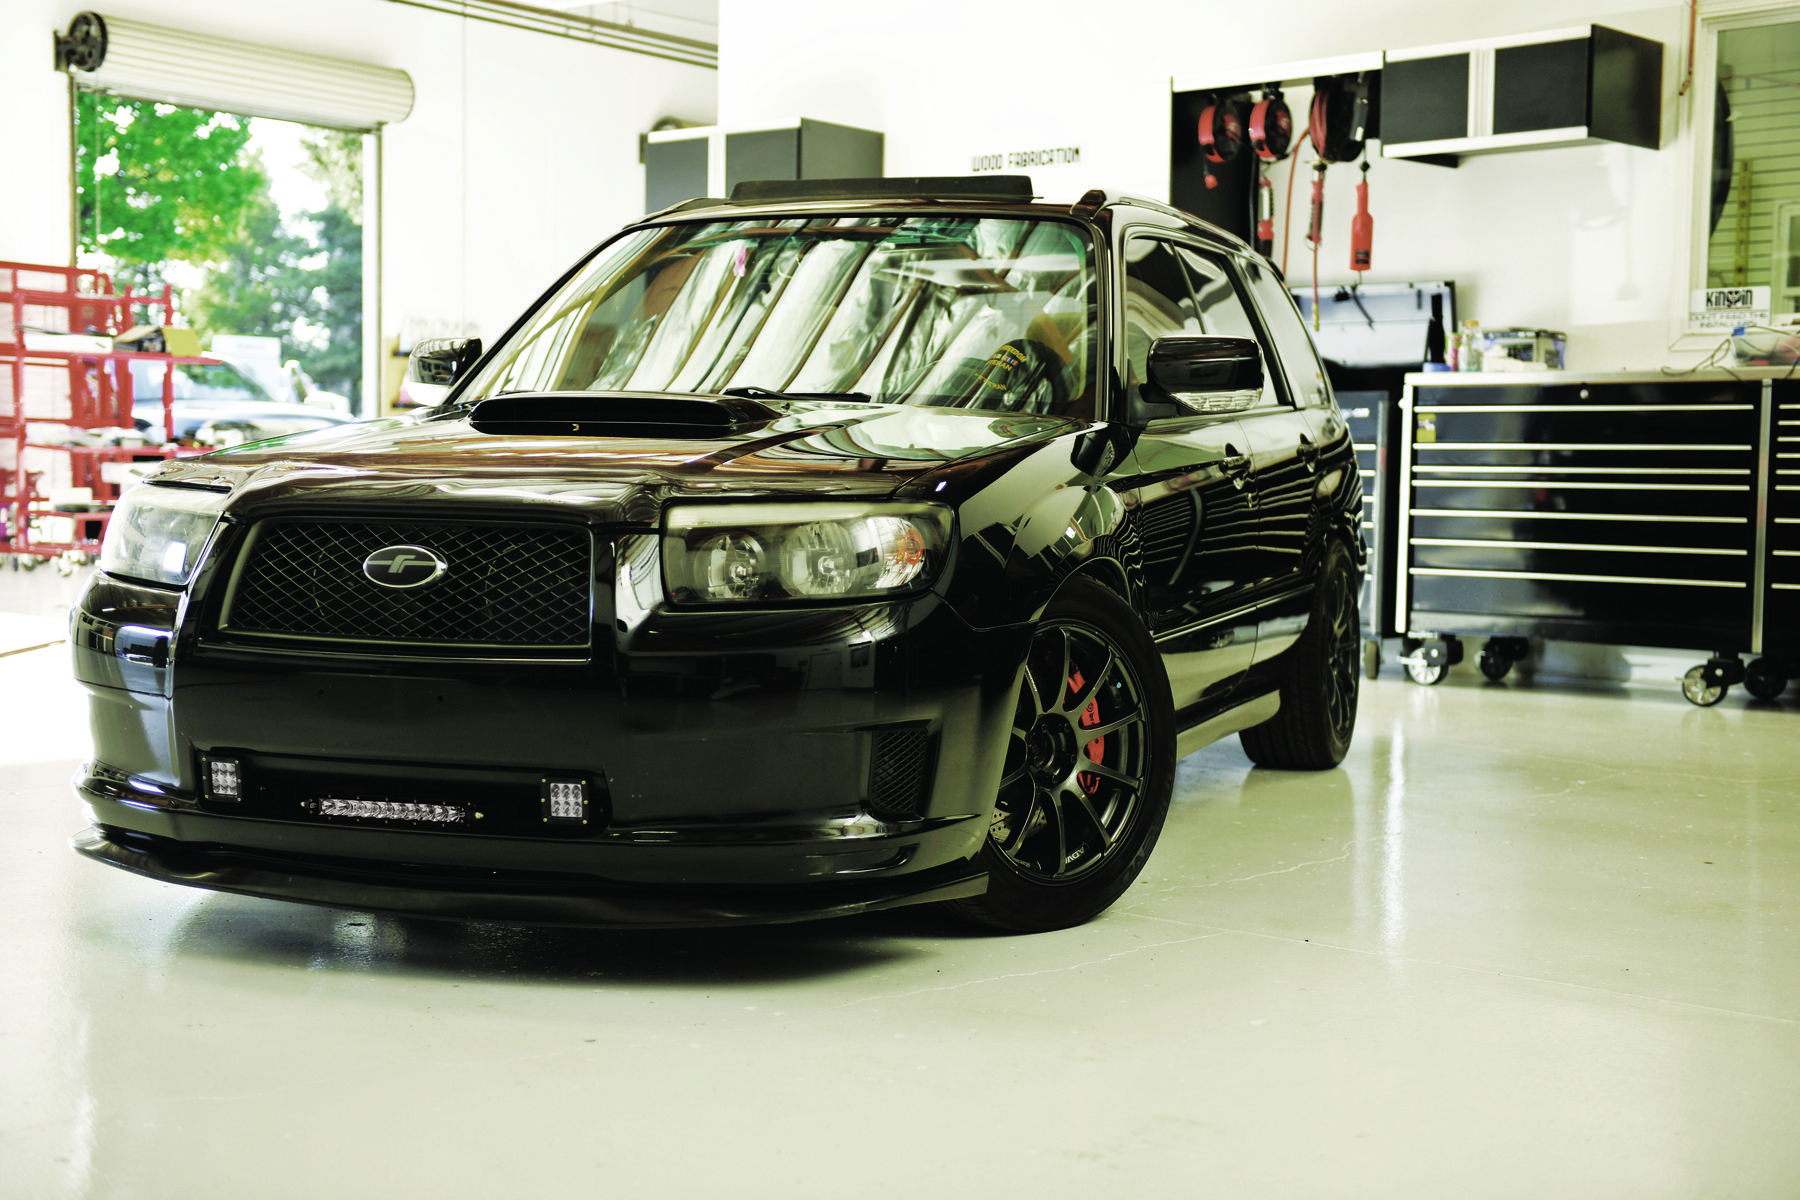 Subaru Forester | A Very Clean and Sexy Subaru Forester with a front end full of Rigids!